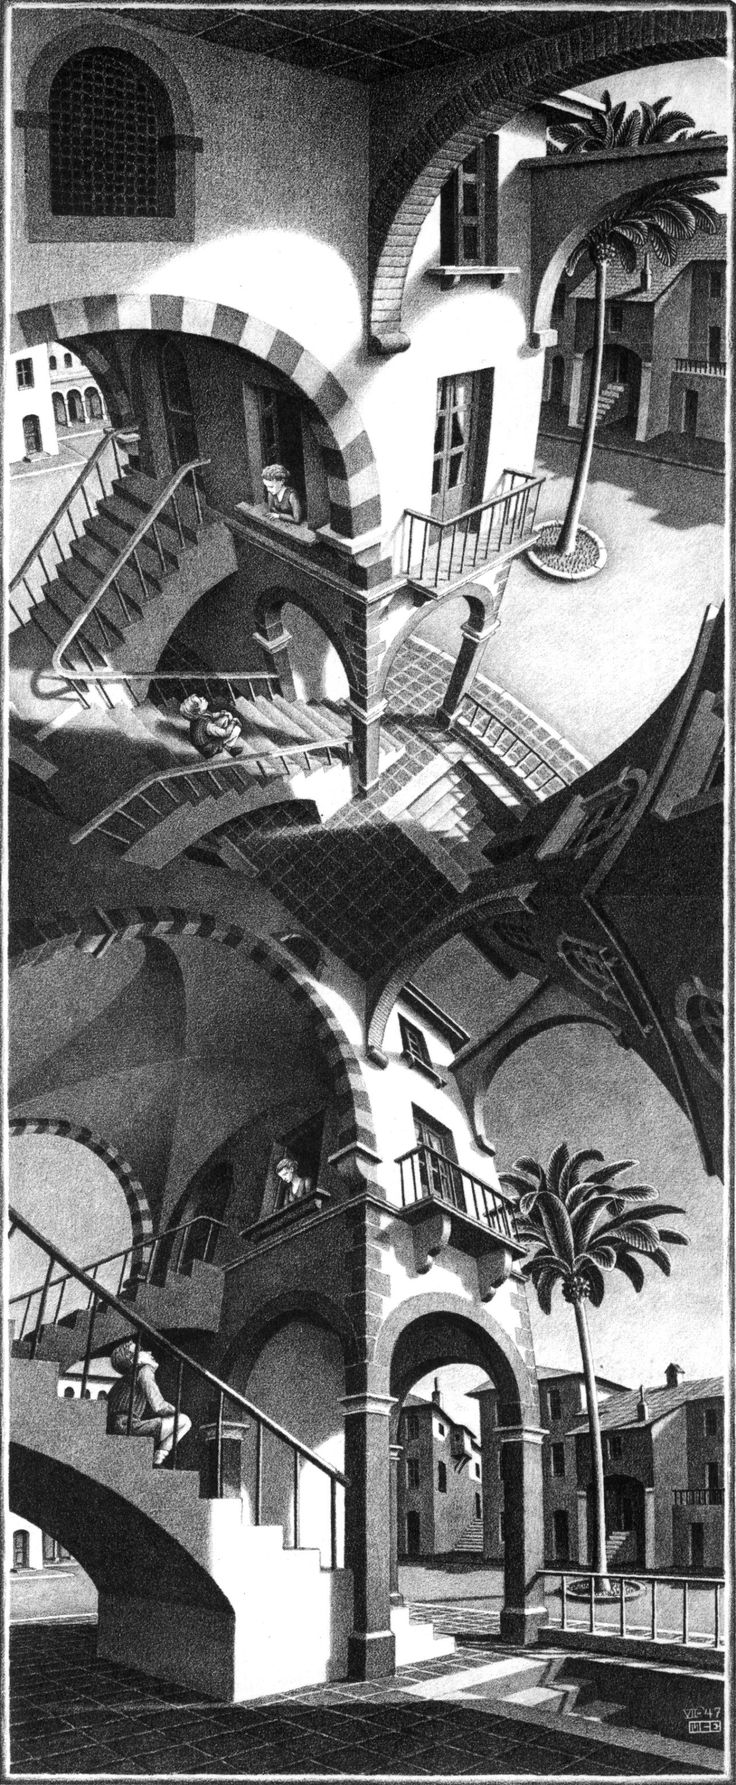 Not a photograph, but one of my favorites! High and Low - M.C. Escher